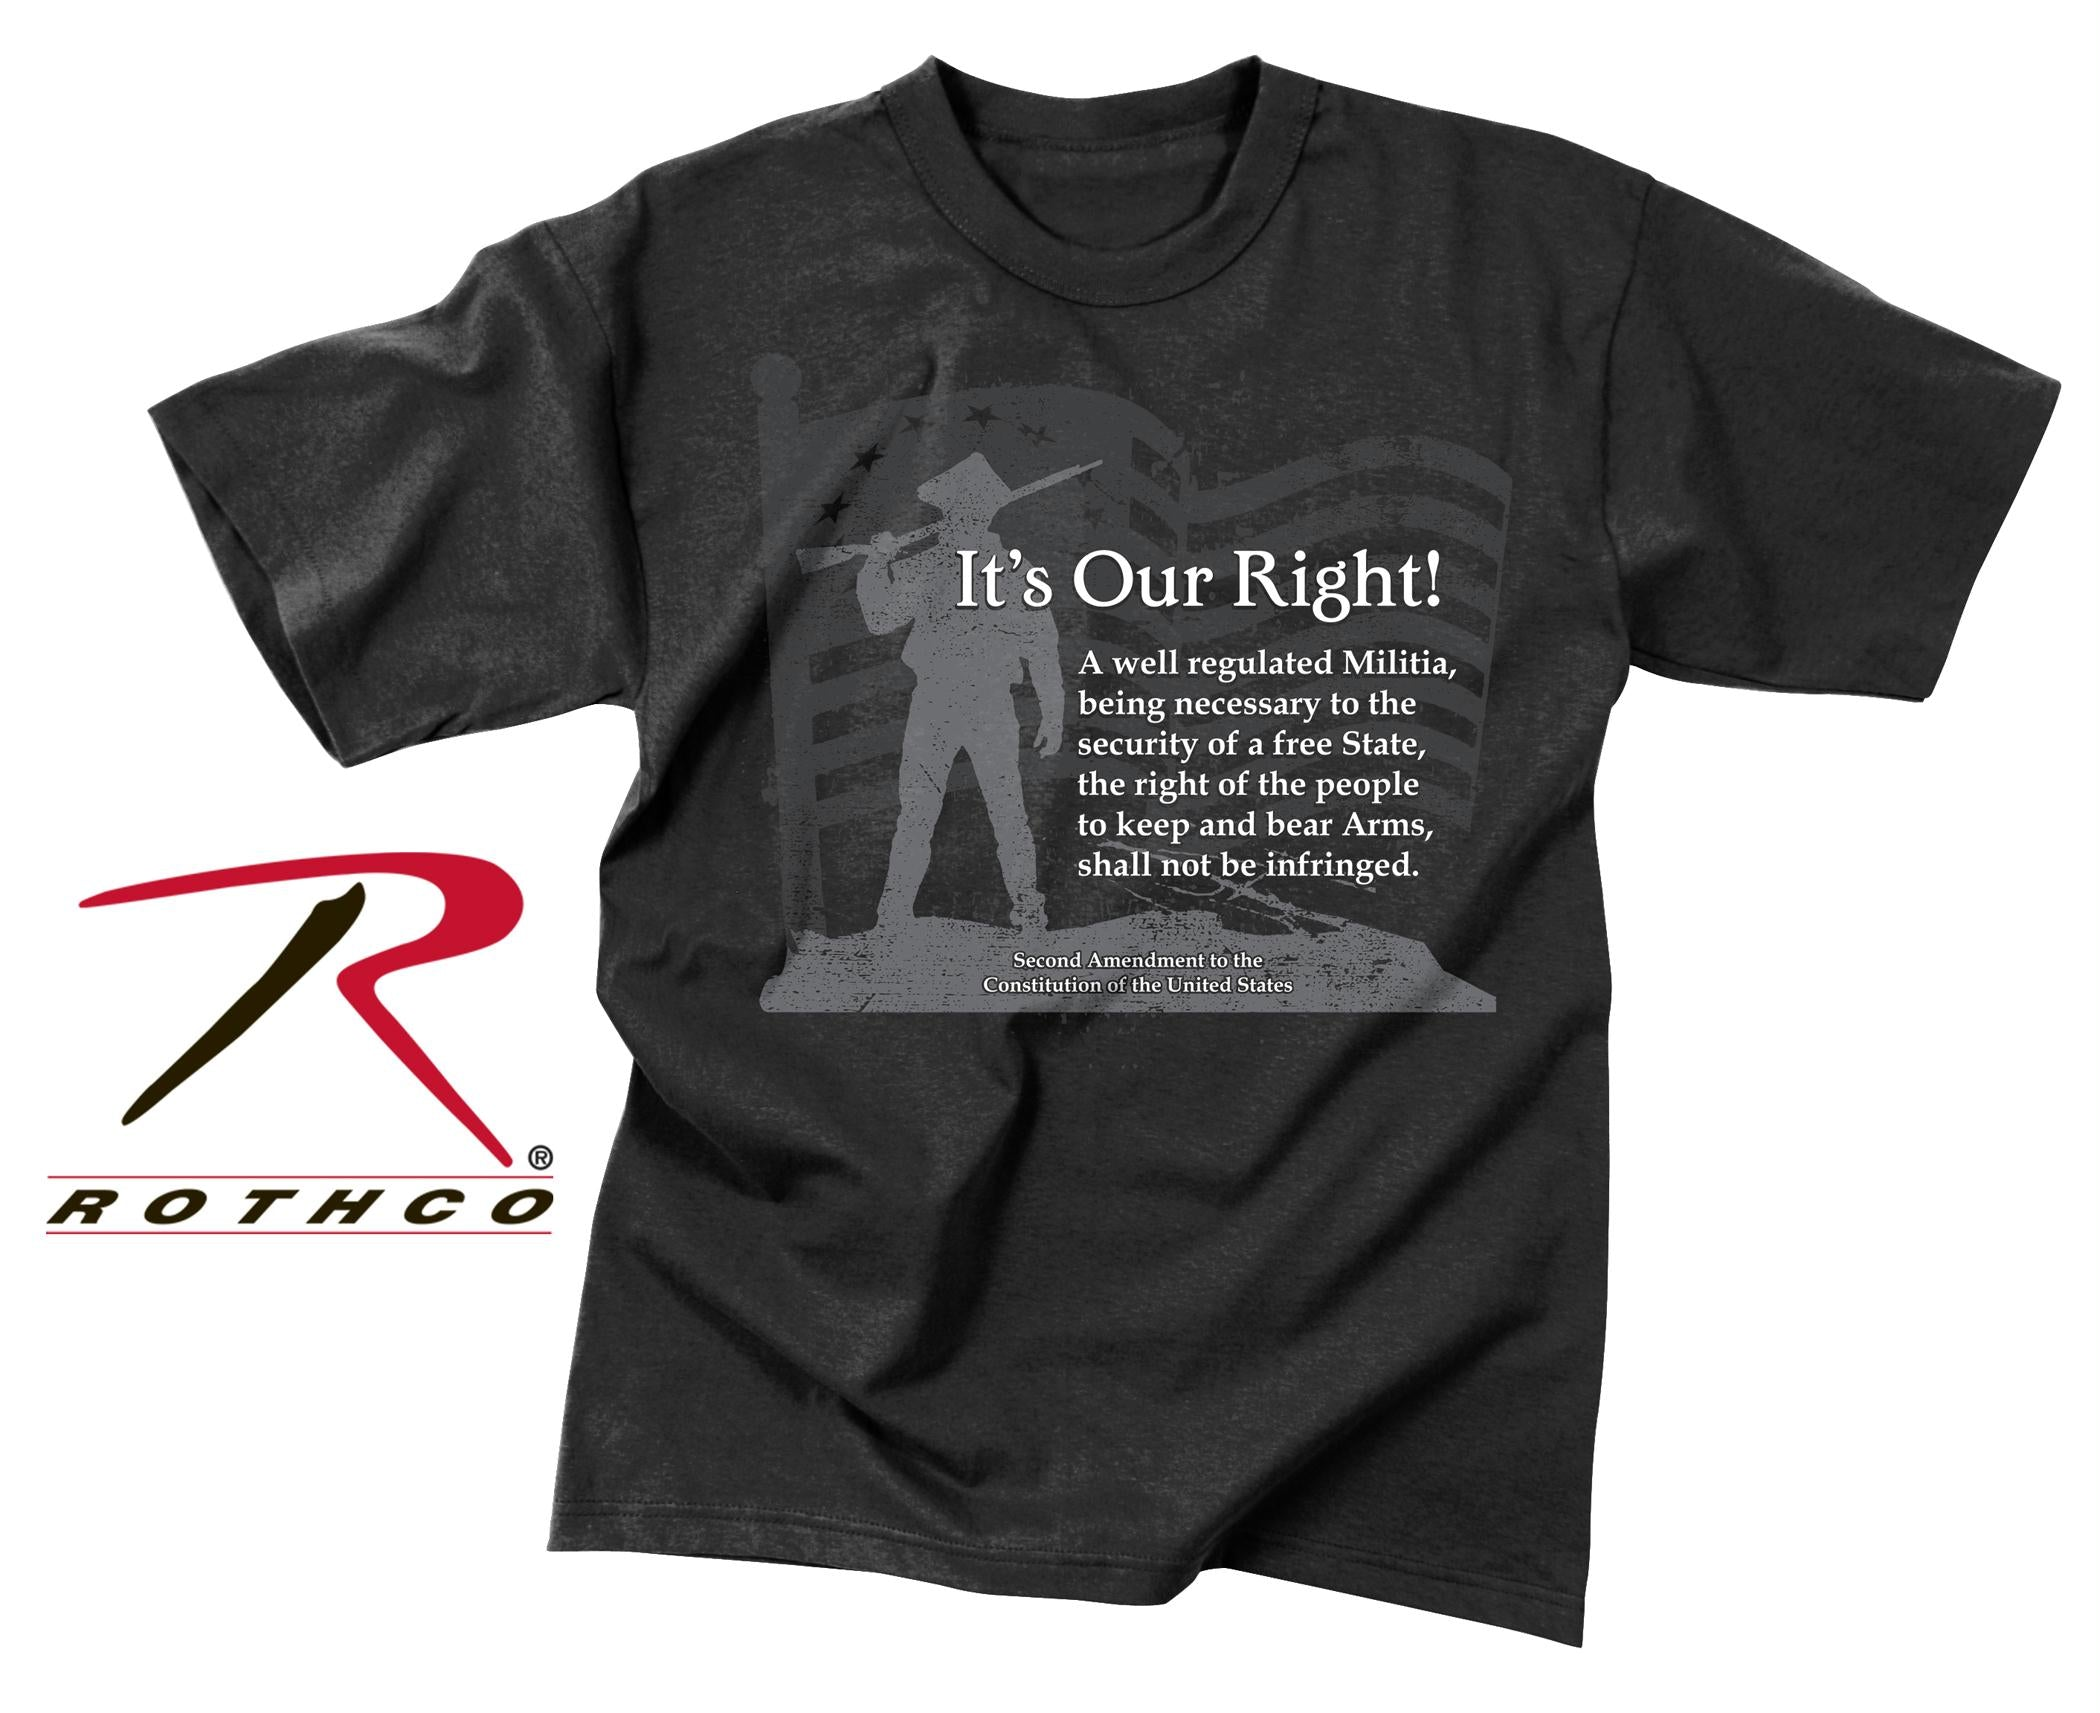 Rothco Vintage ''It's Our Right'' T-Shirt